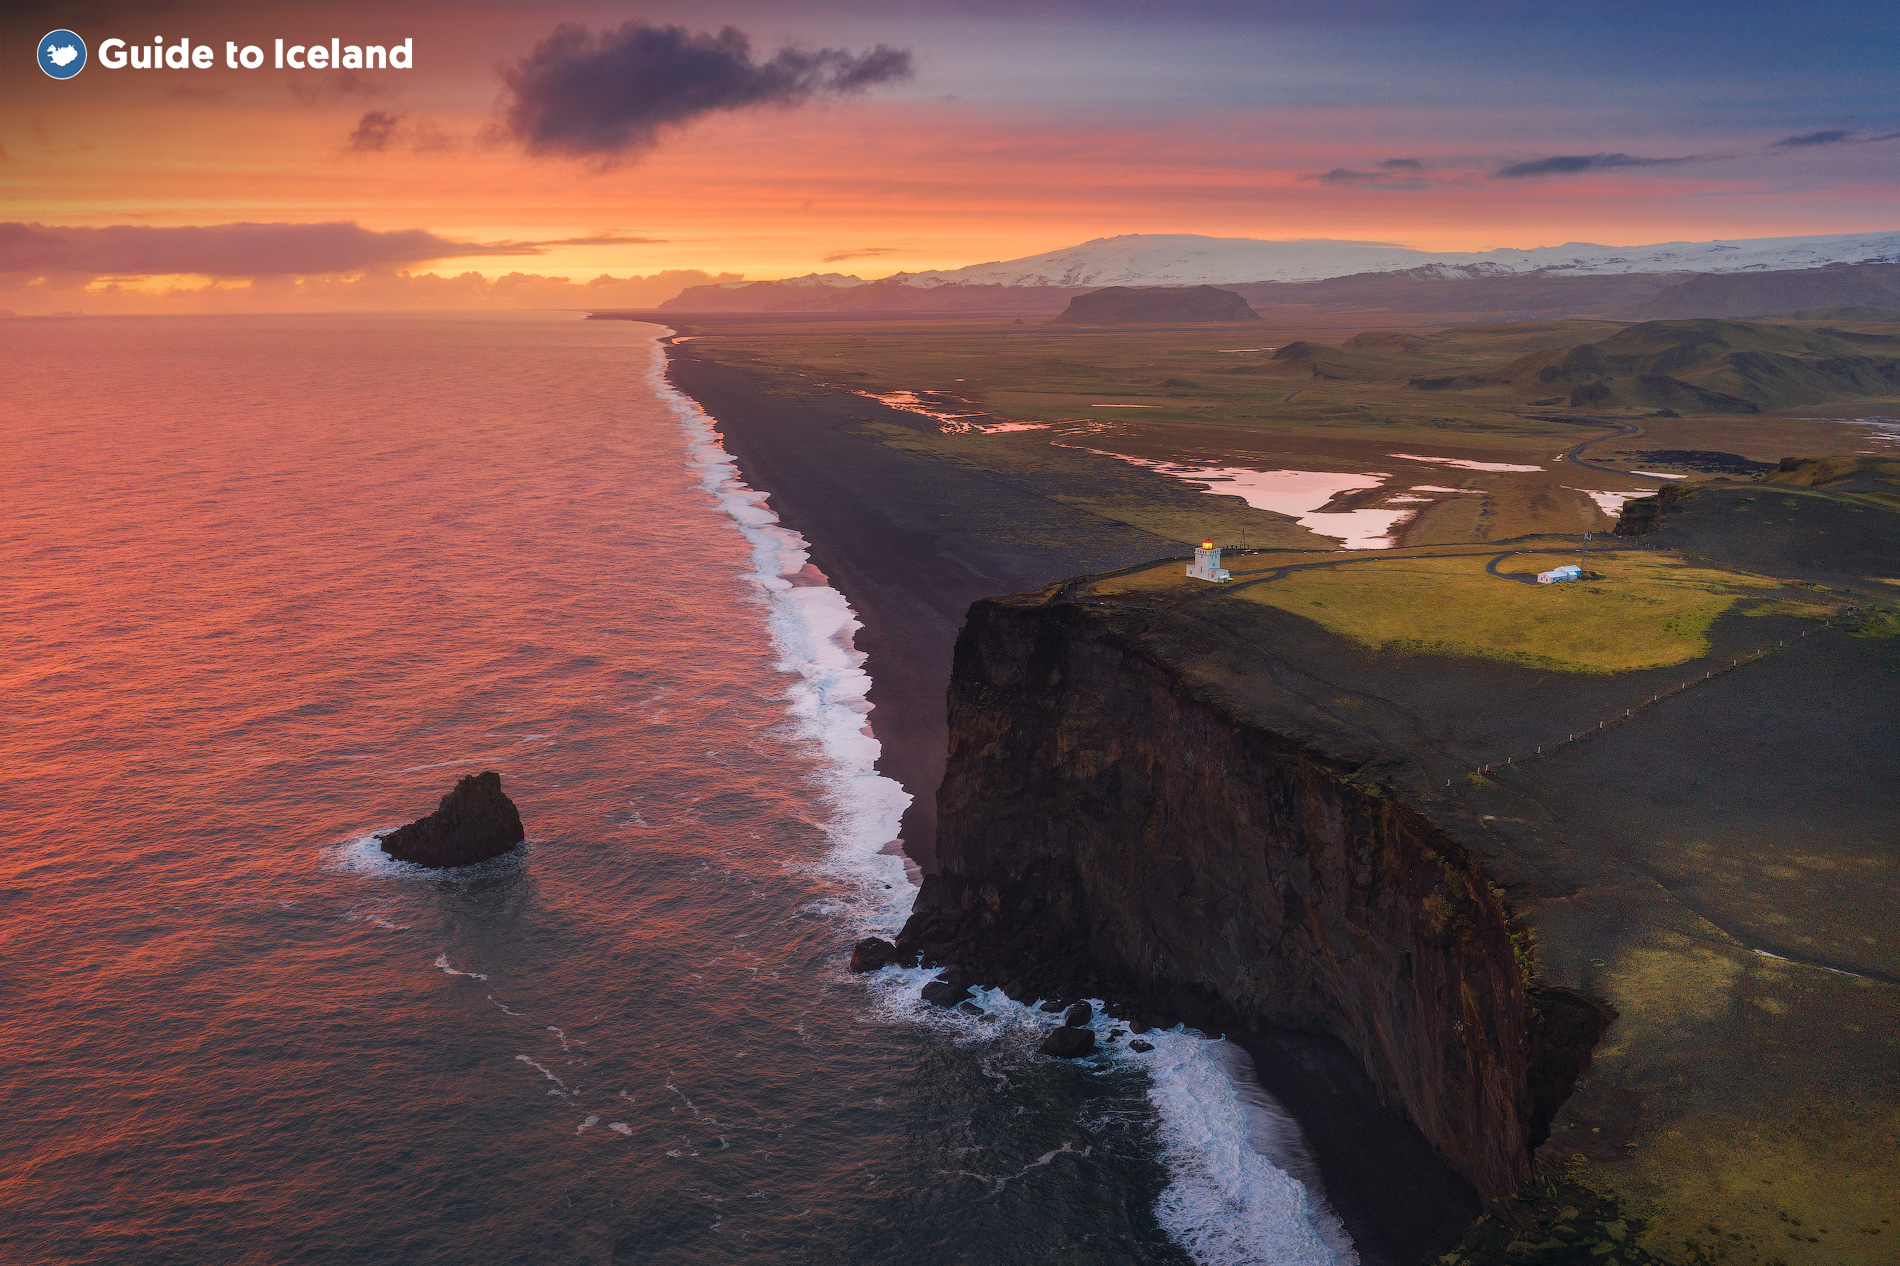 The black sand beach in the South Iceland